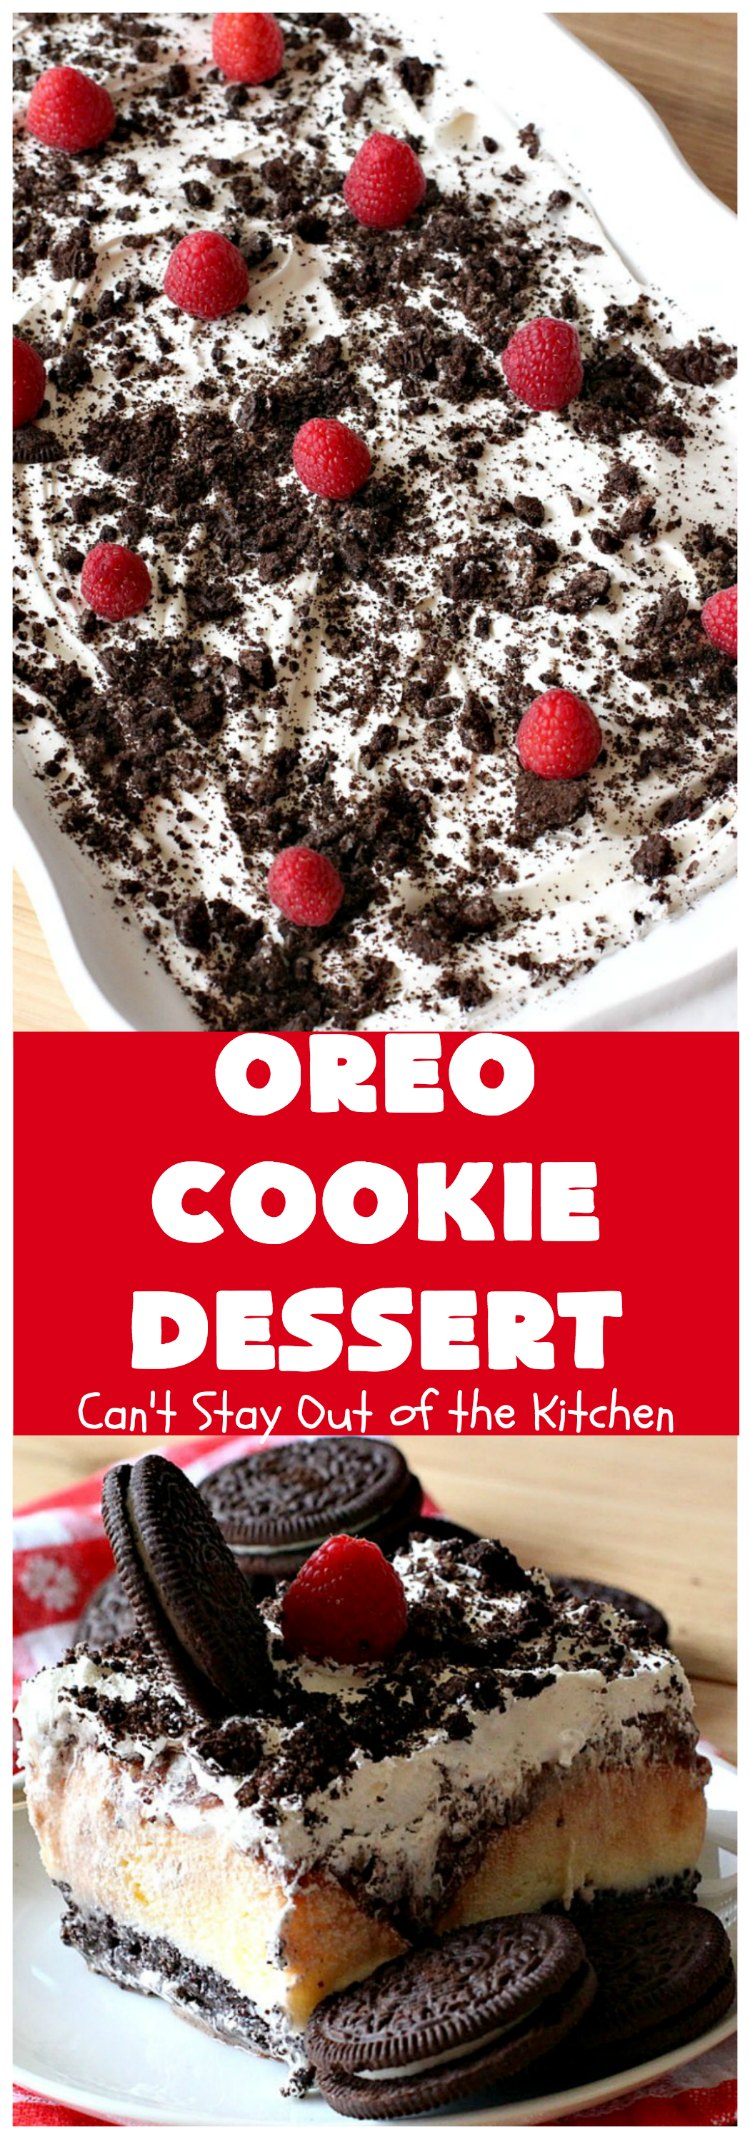 Oreo Cookie Dessert | Can't Stay Out of the Kitchen